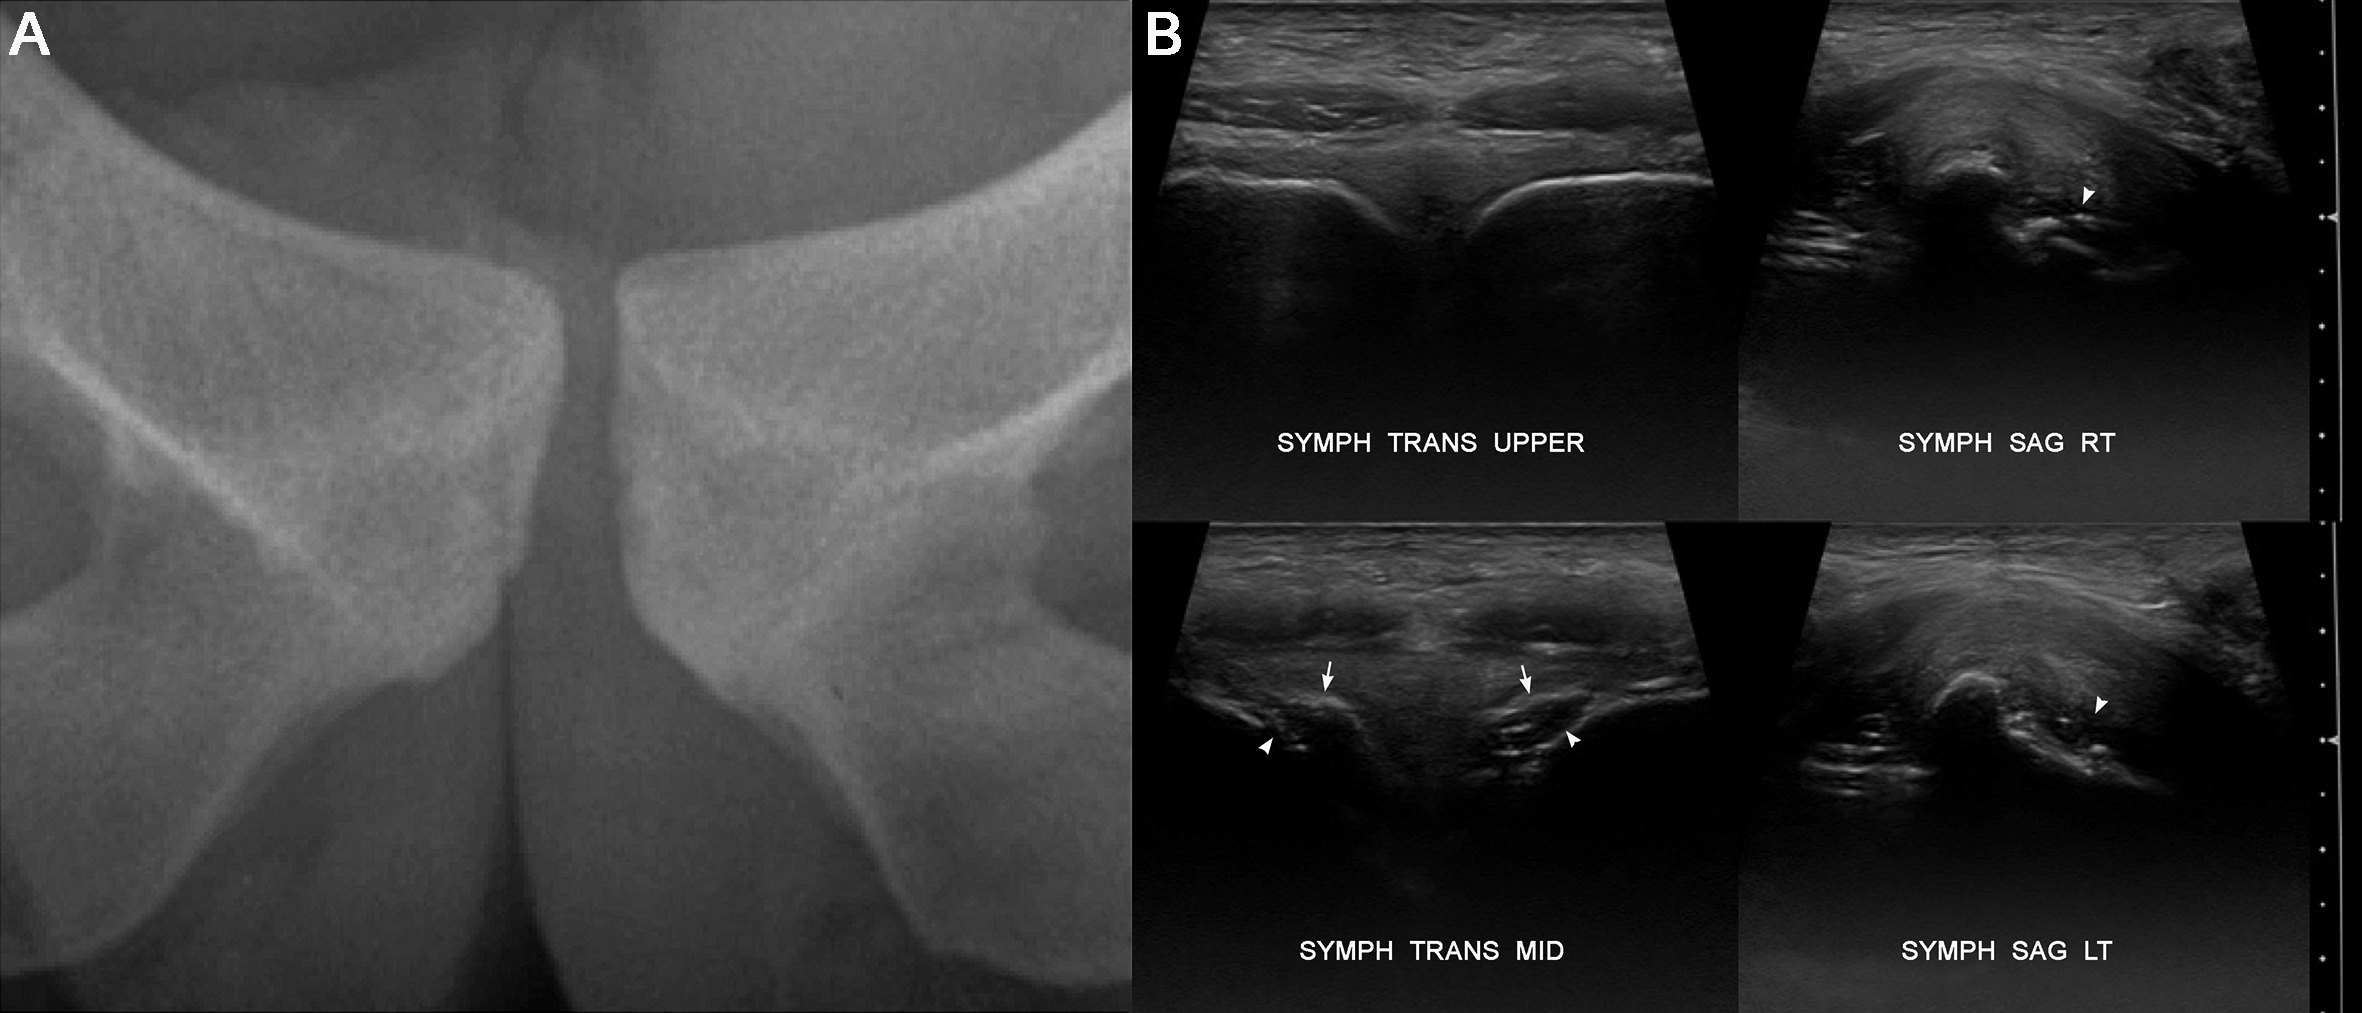 Fig 4. Normal pubic apophyses in a male subject of 21 years age. (A) Xray shows subtle subarticular lucency of open physes at the mid-3rds of each pubic bone. (B) corresponding ultrasound shows smooth & continuous bone surface contours of closed upper physeal segments on each side, but interrupted cortical contours of still open physeal segments at mid-symphysis level. Note the symmetric appearance which includes physeal plate thickness. Arrows = secondary centres of ossification. Arrowheads = physeal plates.